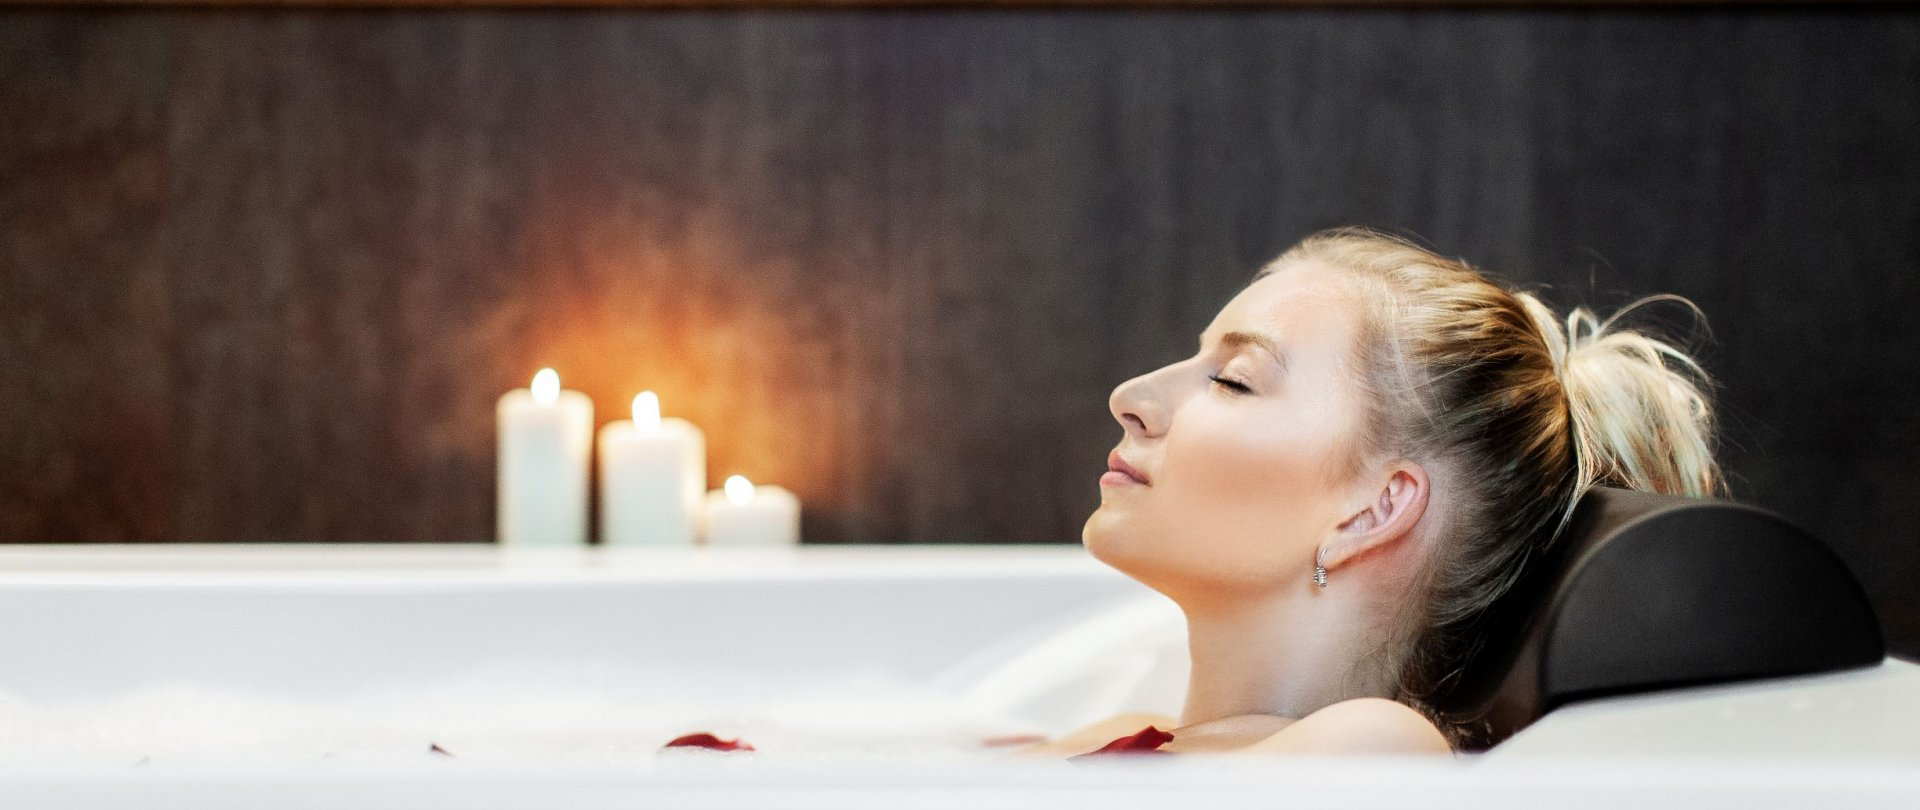 Fall in love at the Gwiazda Morza SPA Institute